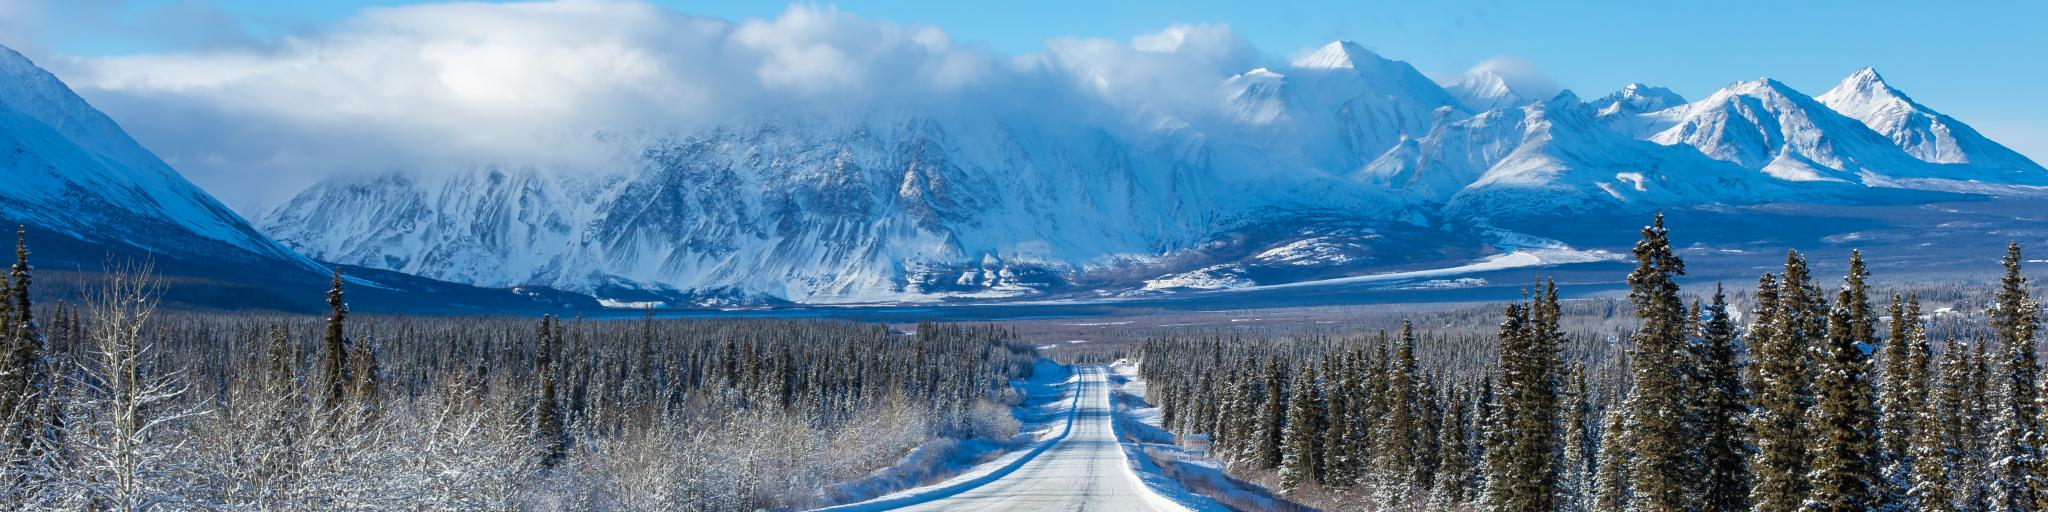 Alaska Highway through the forests of Yukon heading towards mountains in the winter